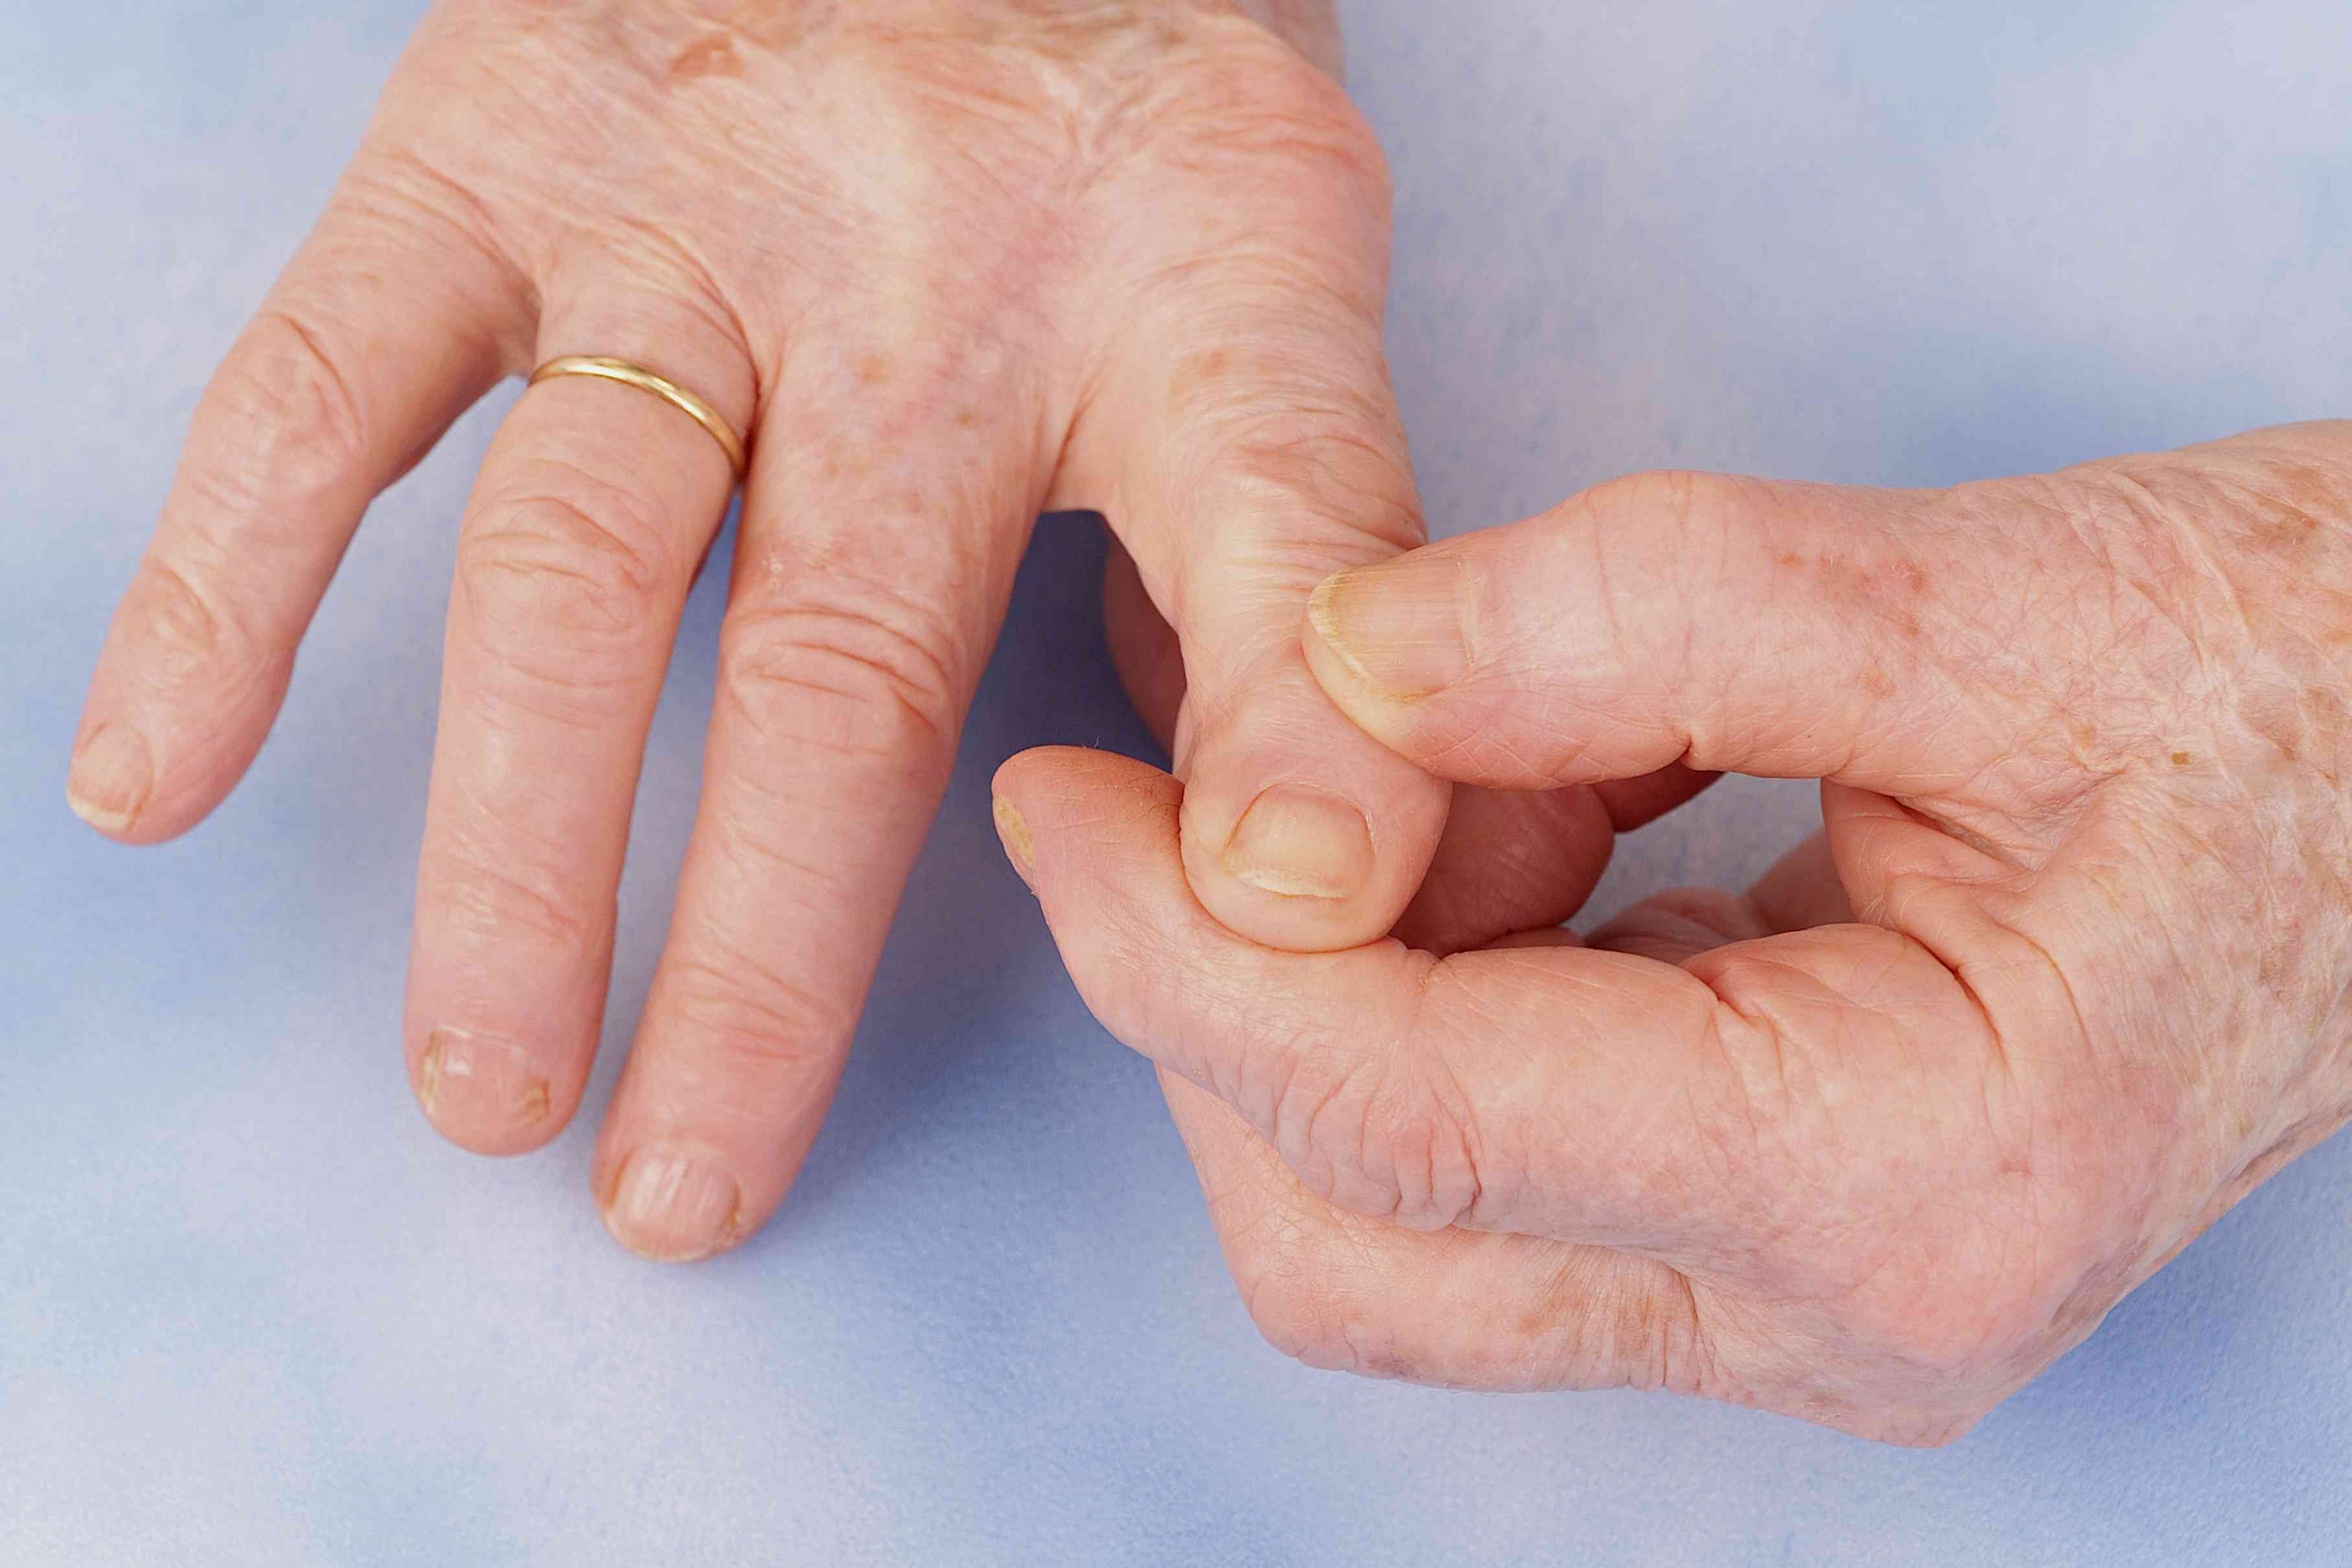 Close up of an older person's hands